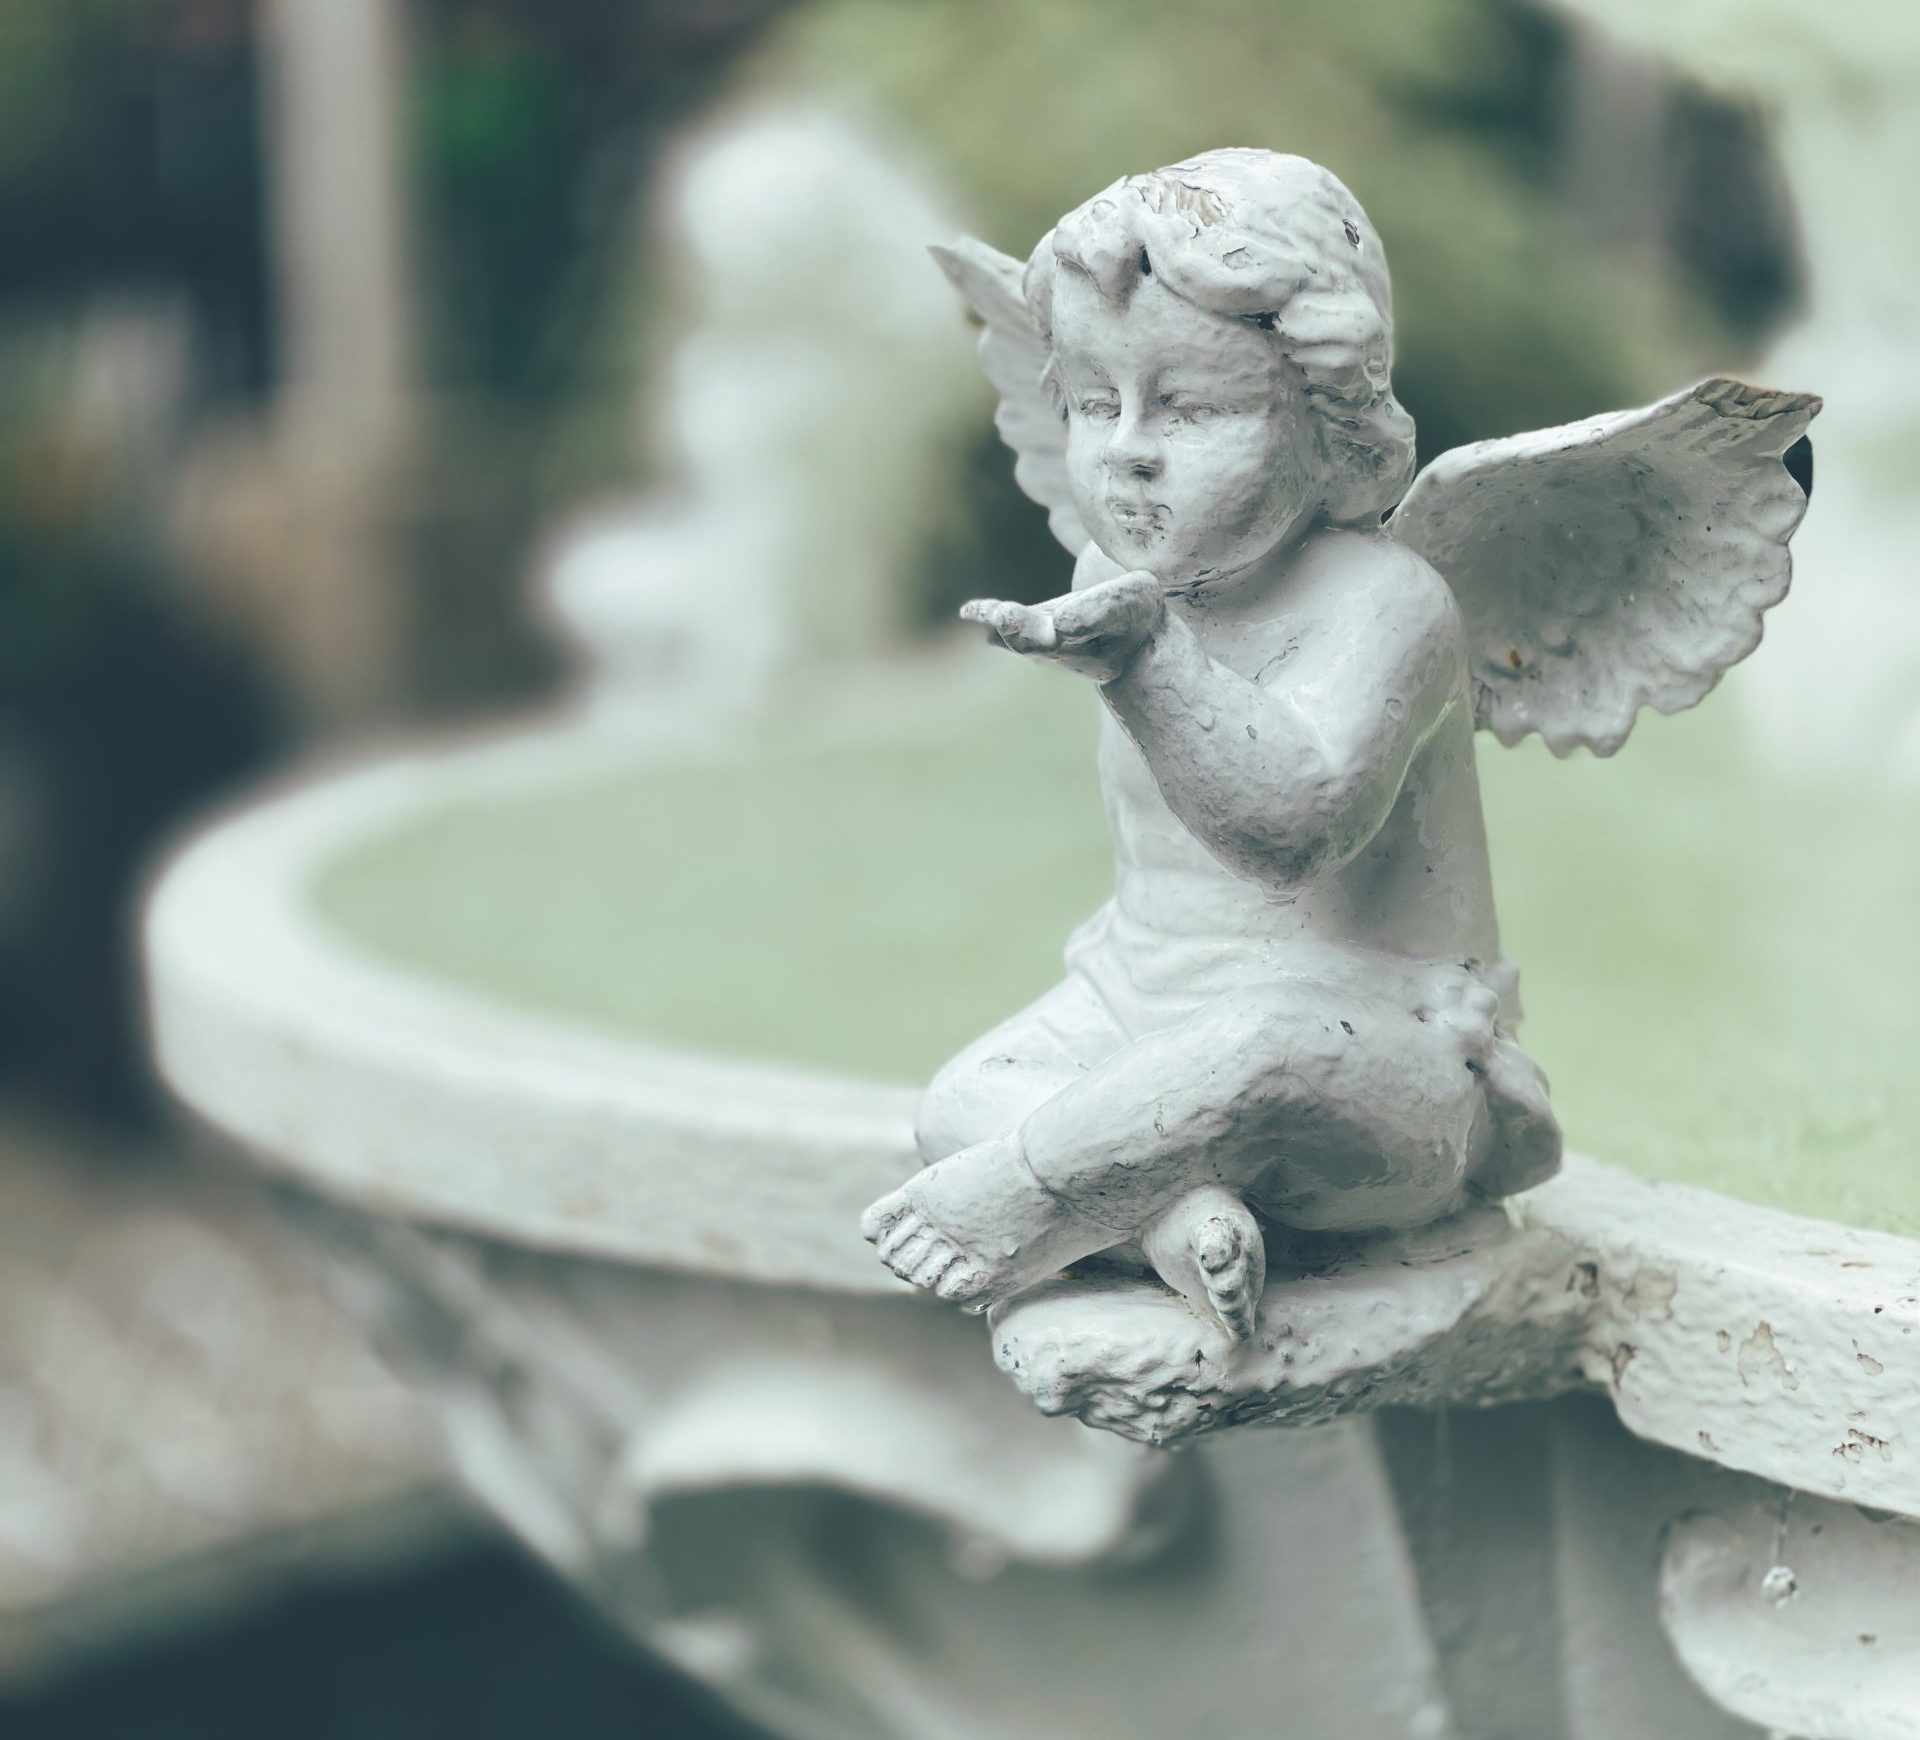 Angels in a fountain by CC Lozano